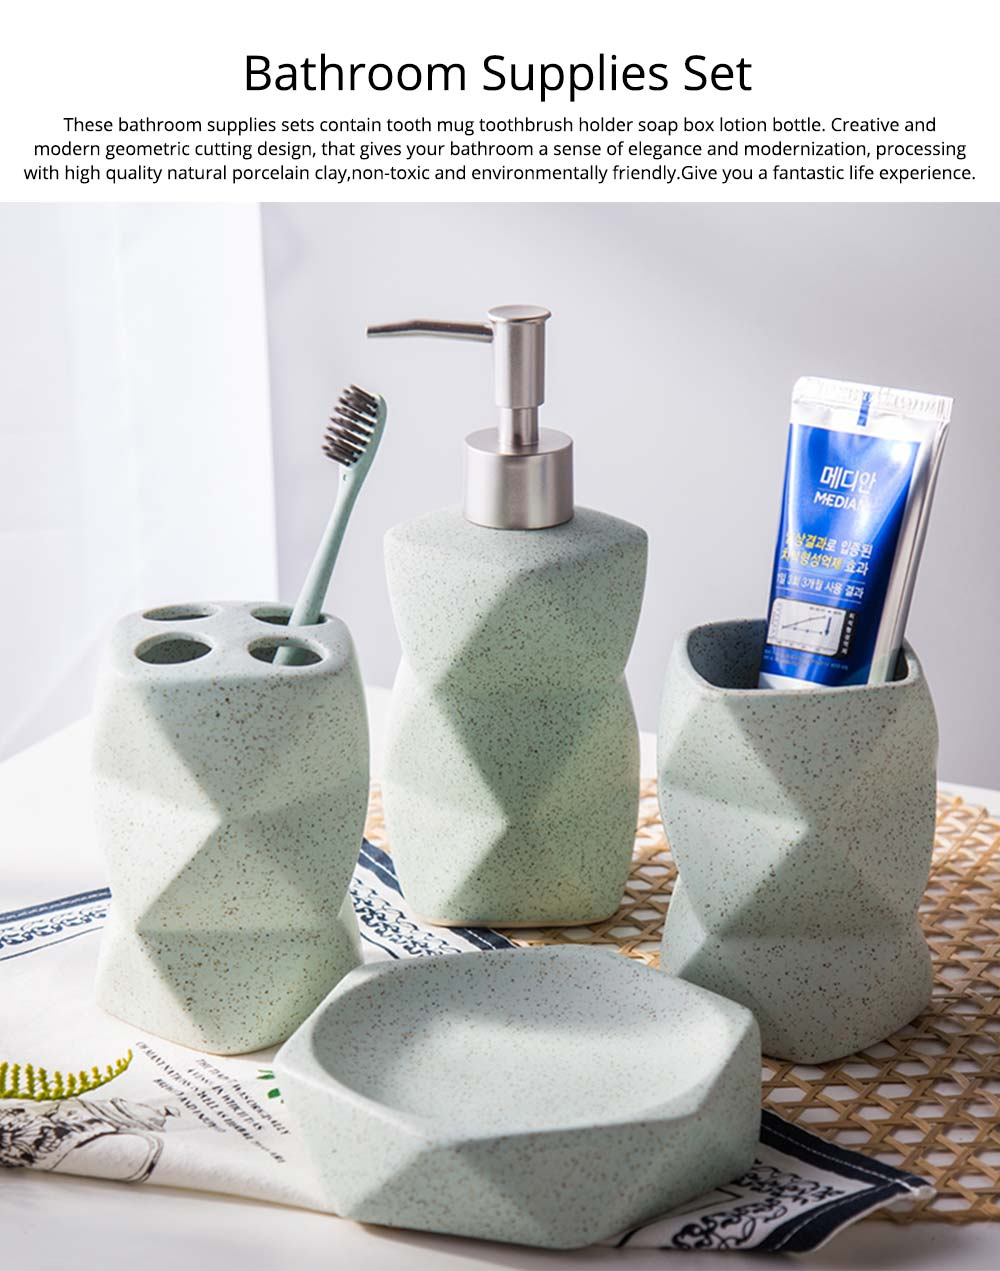 Nordic Style 4 pieces Ceramic Bathroom Accessories Set, Tooth Mug Toothbrush Holder Soap Tray Lotion Bottle 0